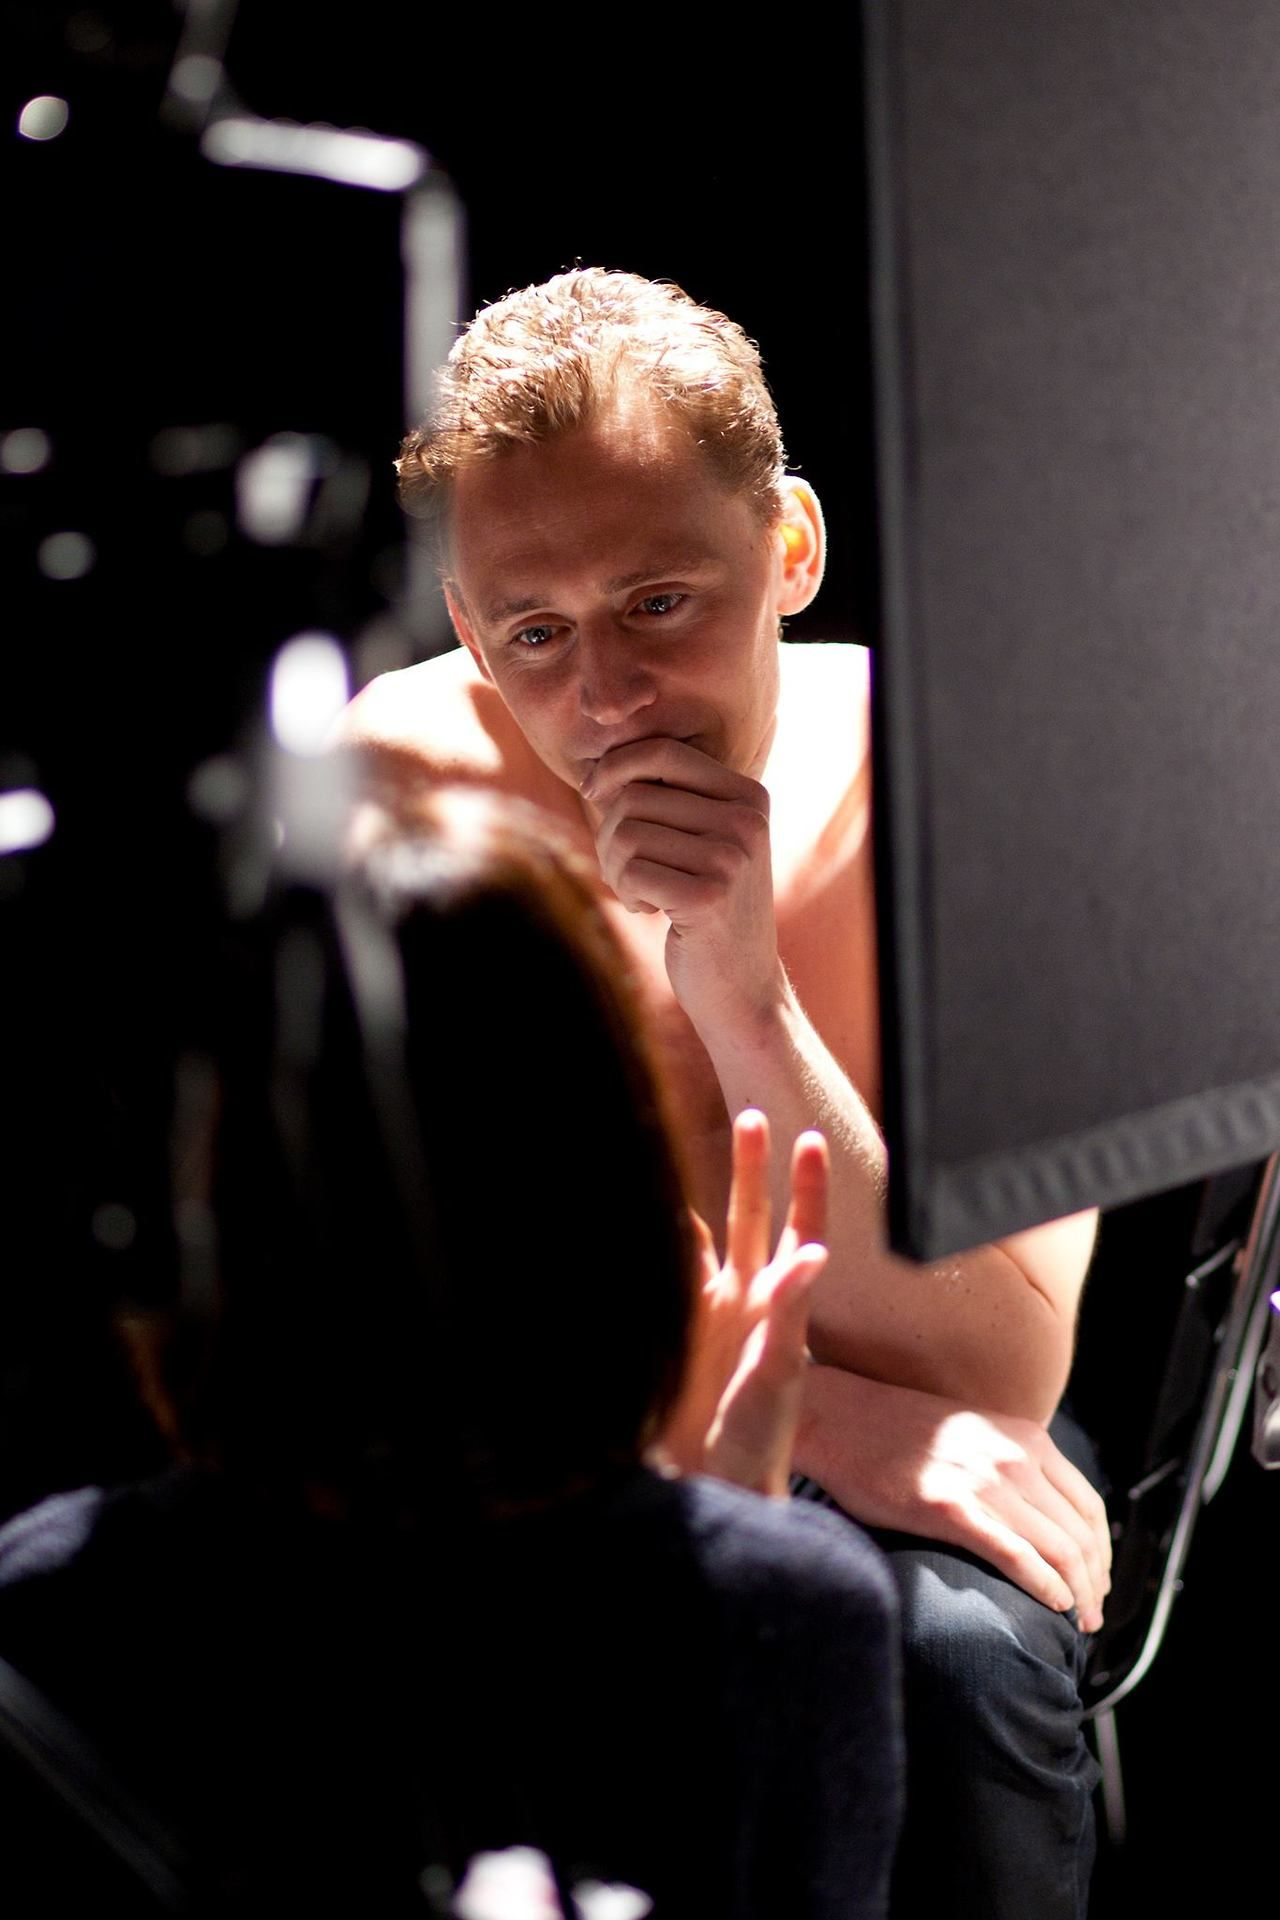 #TomHiddleston behind the scenes of Out of Darkness via Torrilla on Tumblr.